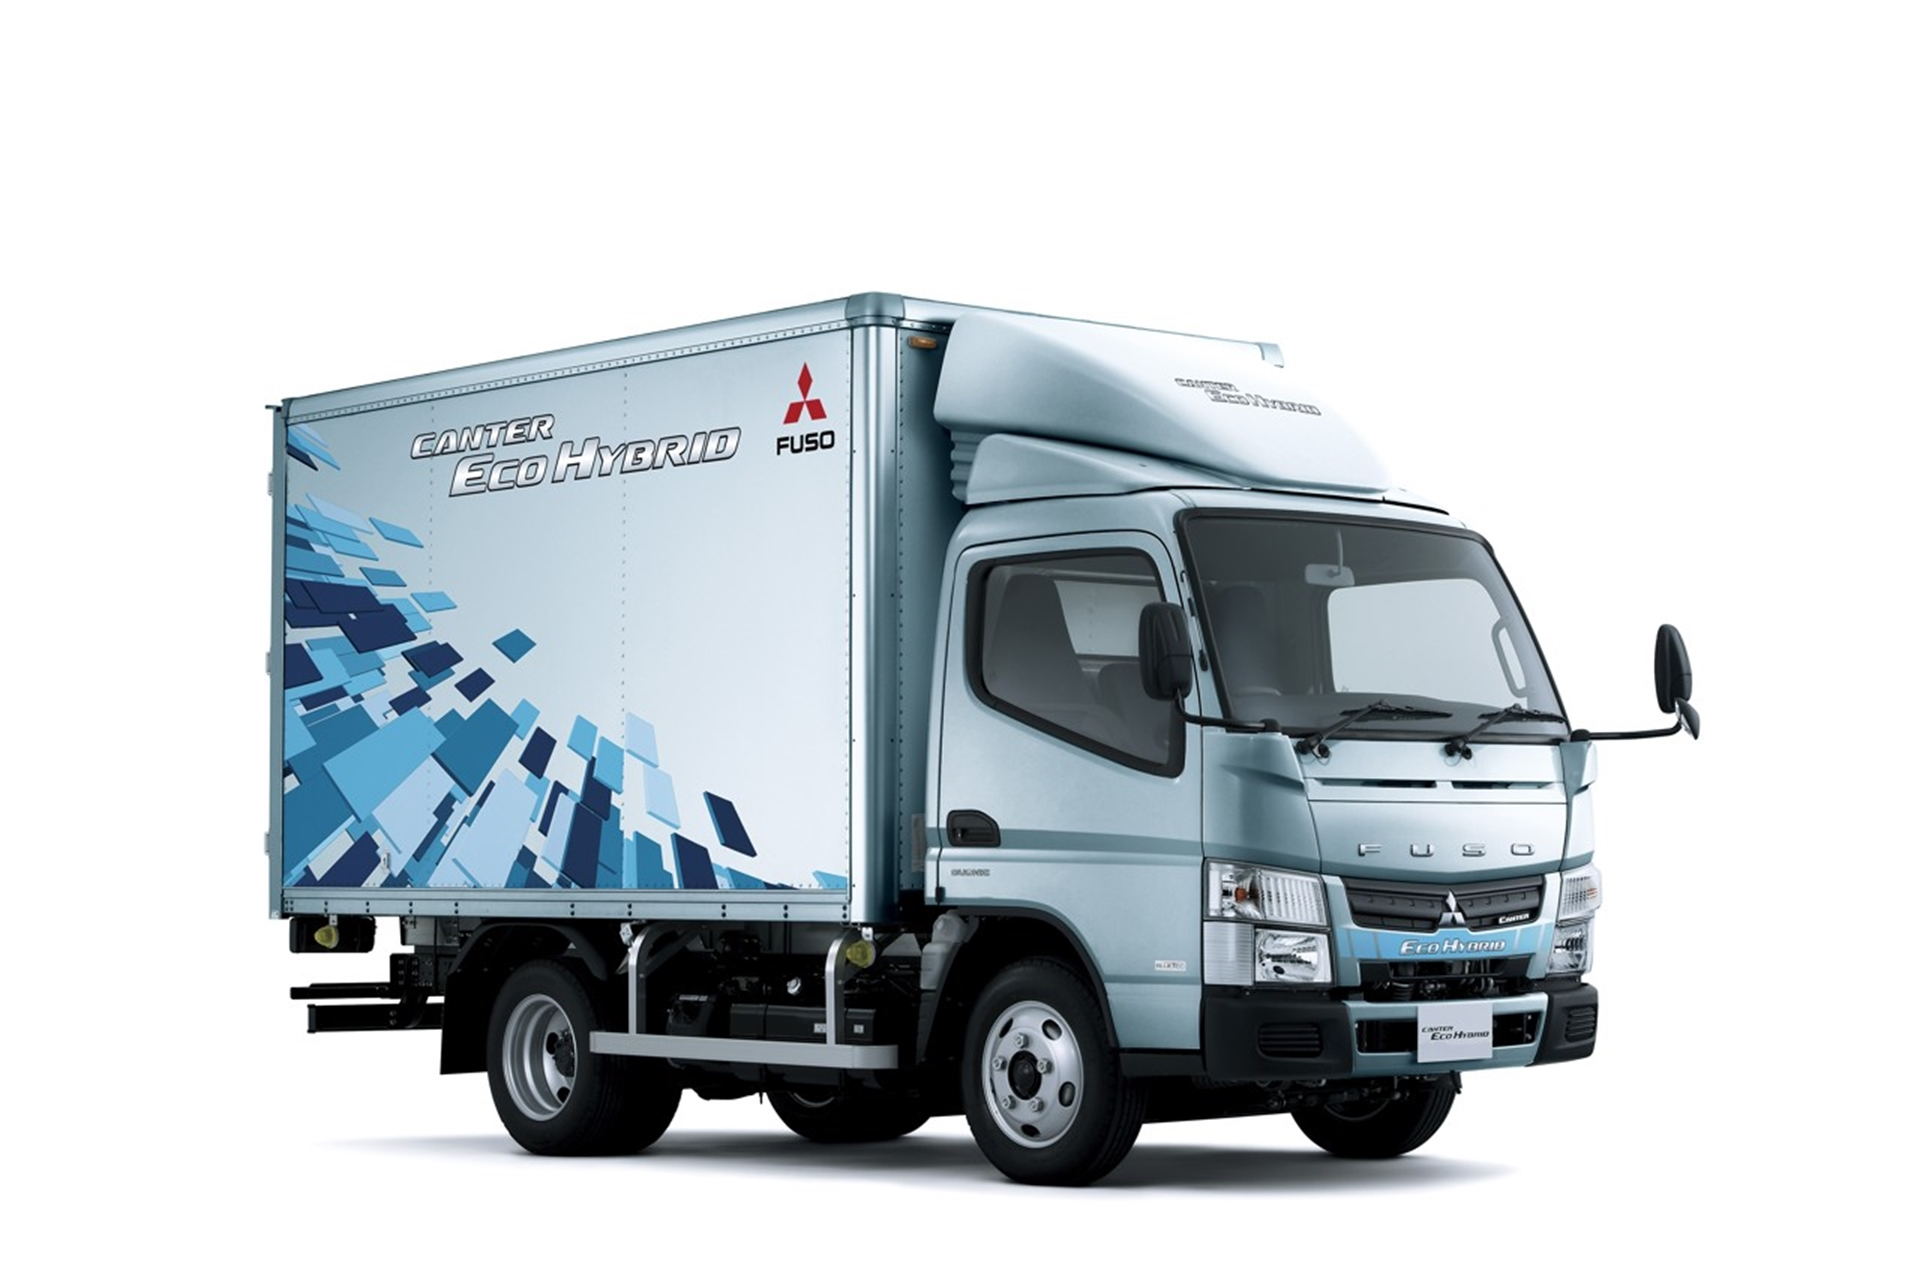 Fuso Canter Hybrid